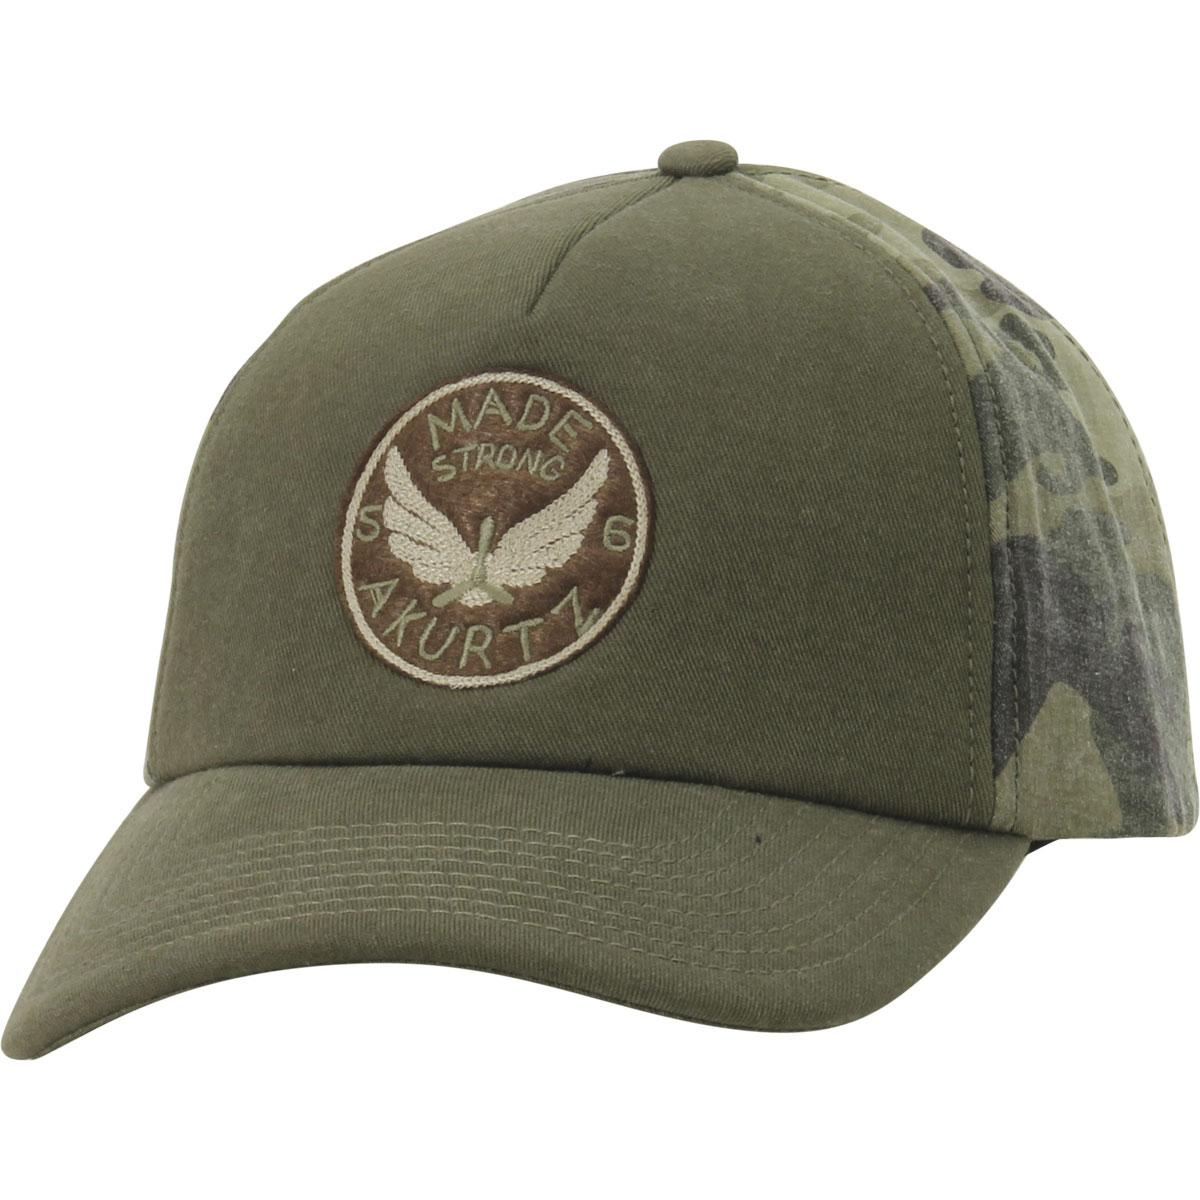 Image of Kurtz Men's Camo Made Strong Baseball Cap Hat - Olive Drab/Camo - One Size Fits Most